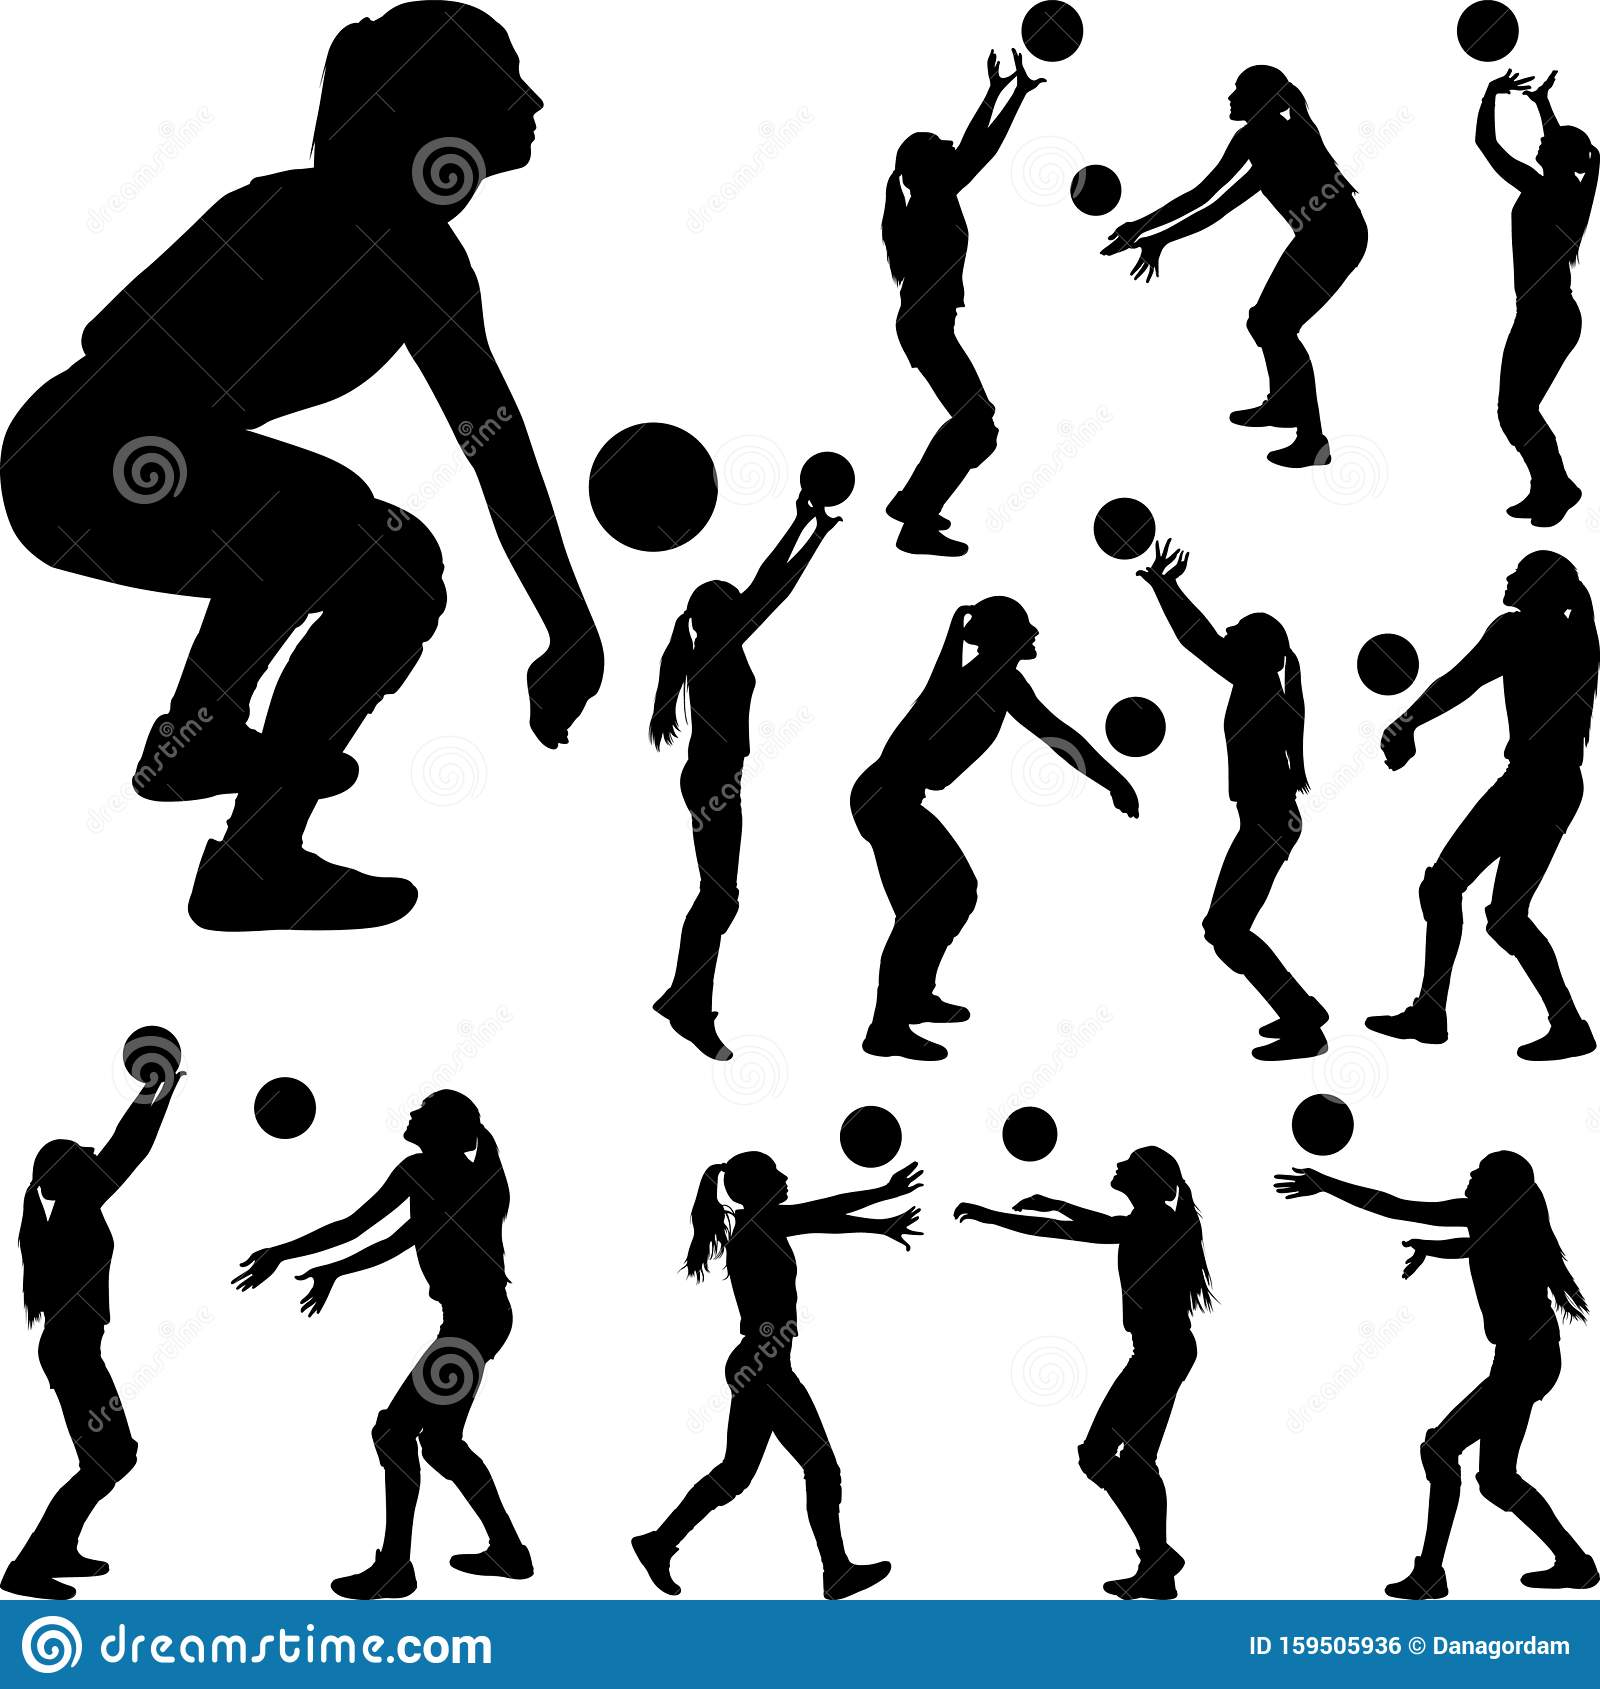 Volleyball Silhouette Vector at GetDrawings | Free download